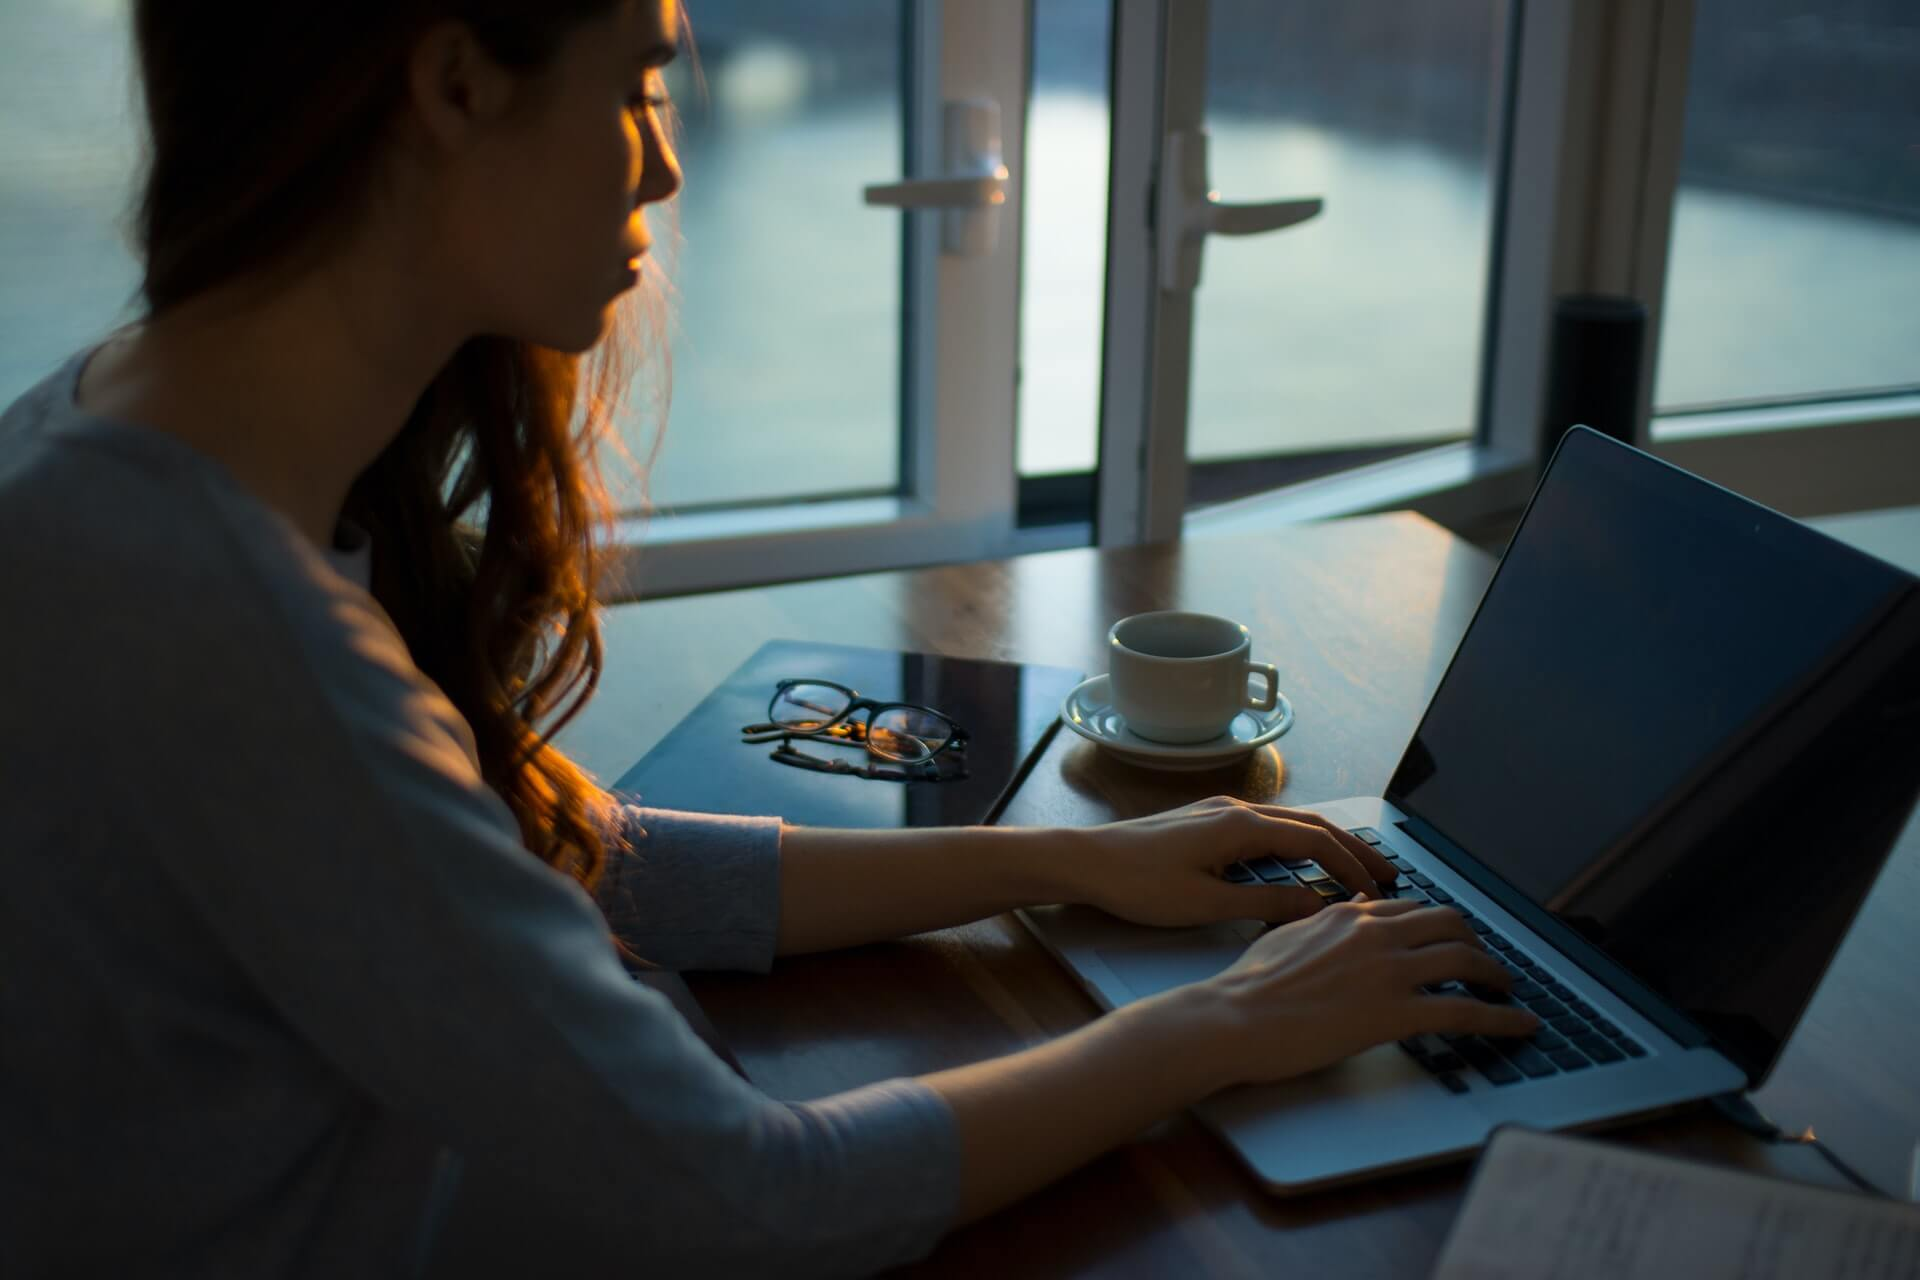 woman sitting beside table using laptop white mug and glasses on the surface